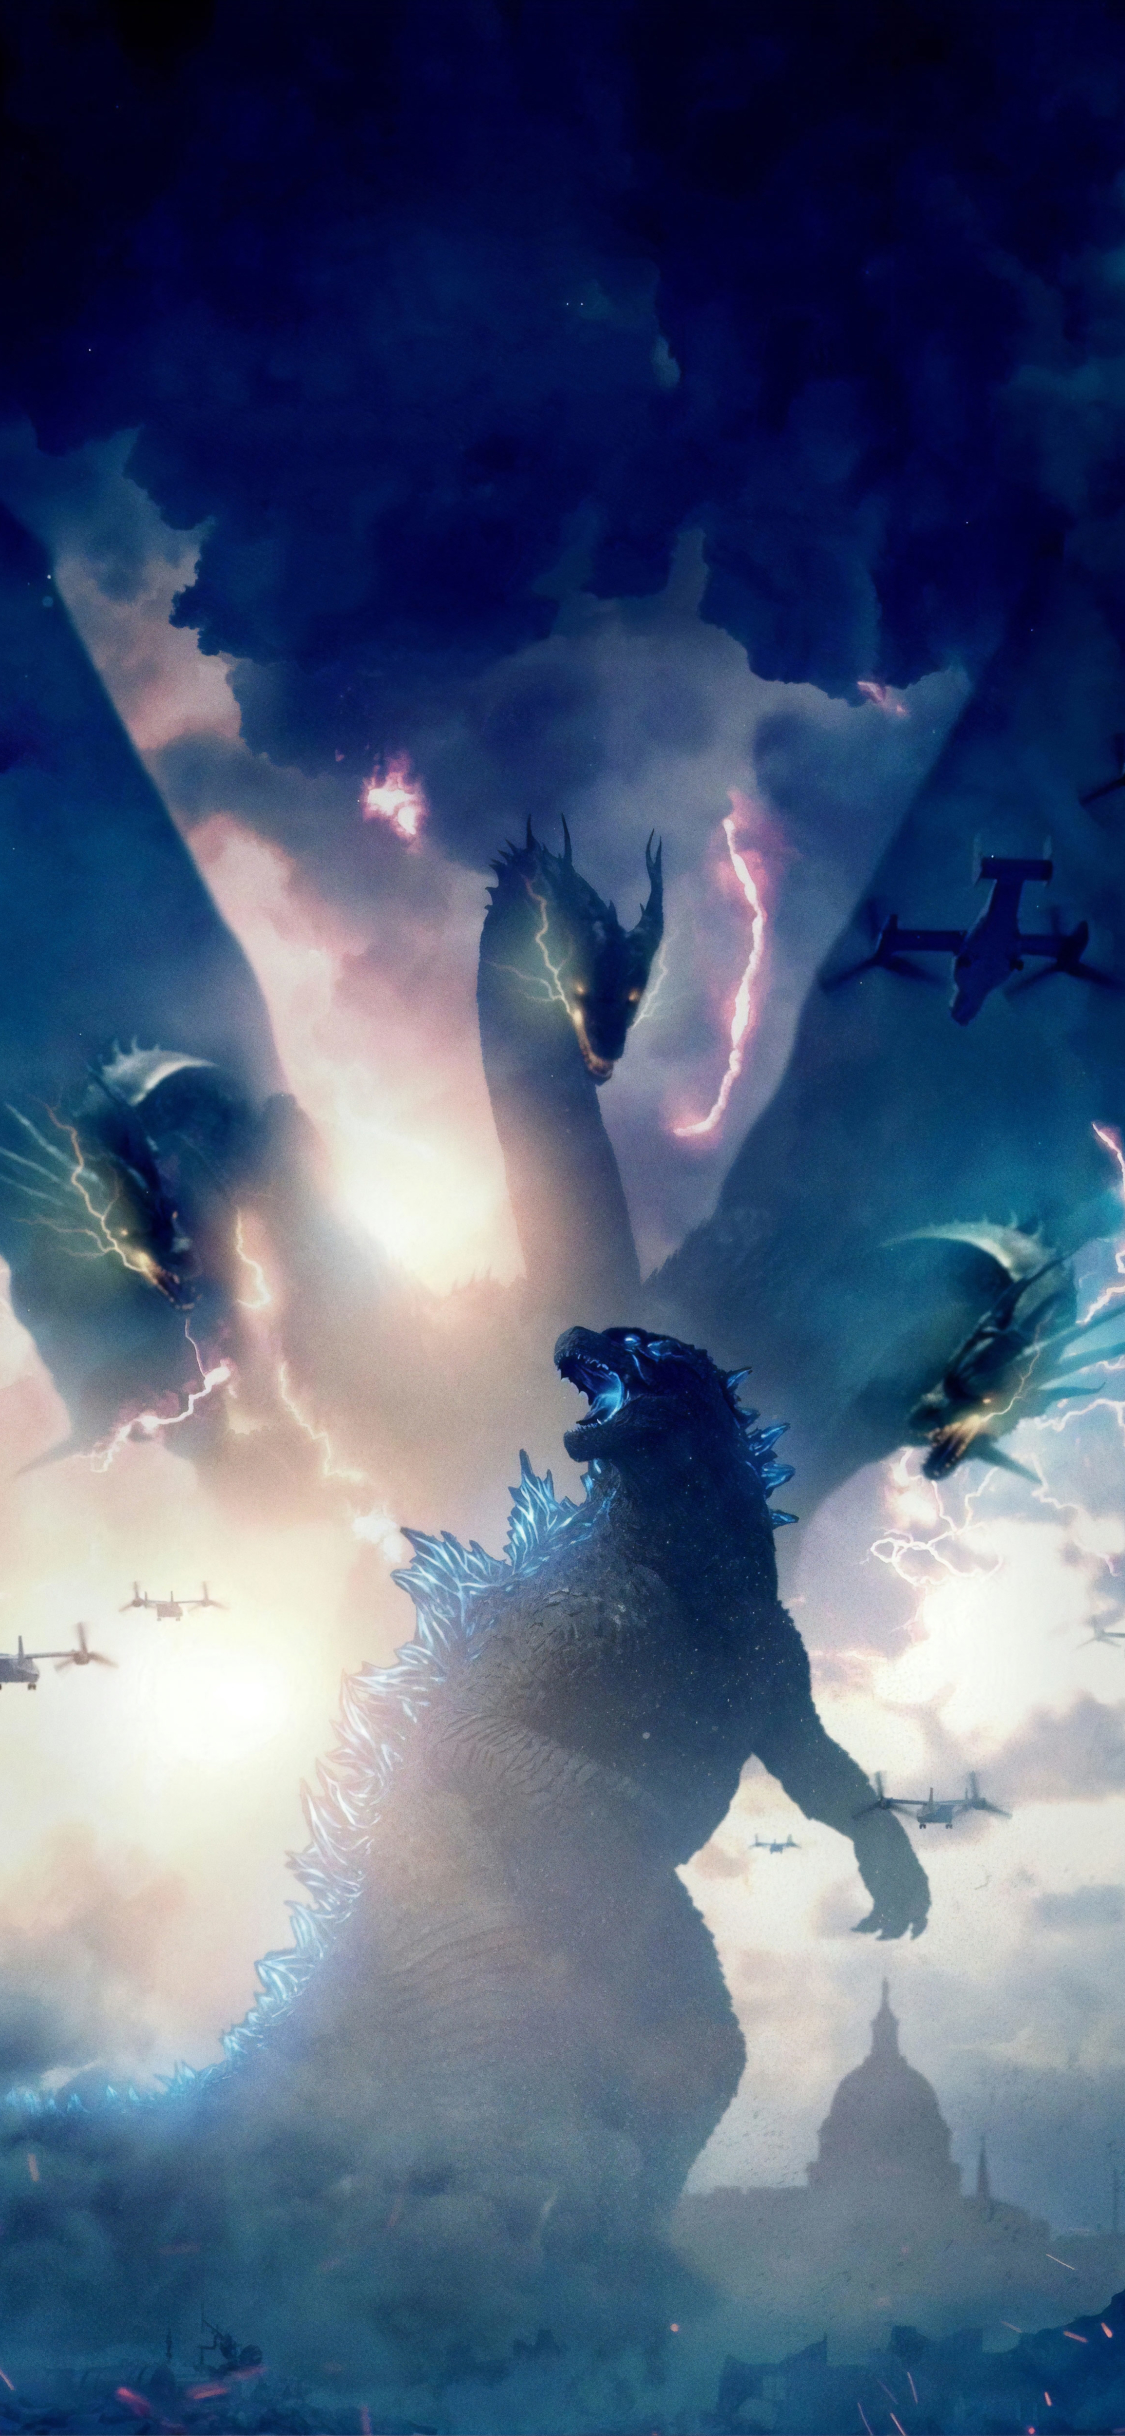 1125x2436 Godzilla King of the Monsters Movie 2019 Iphone ...